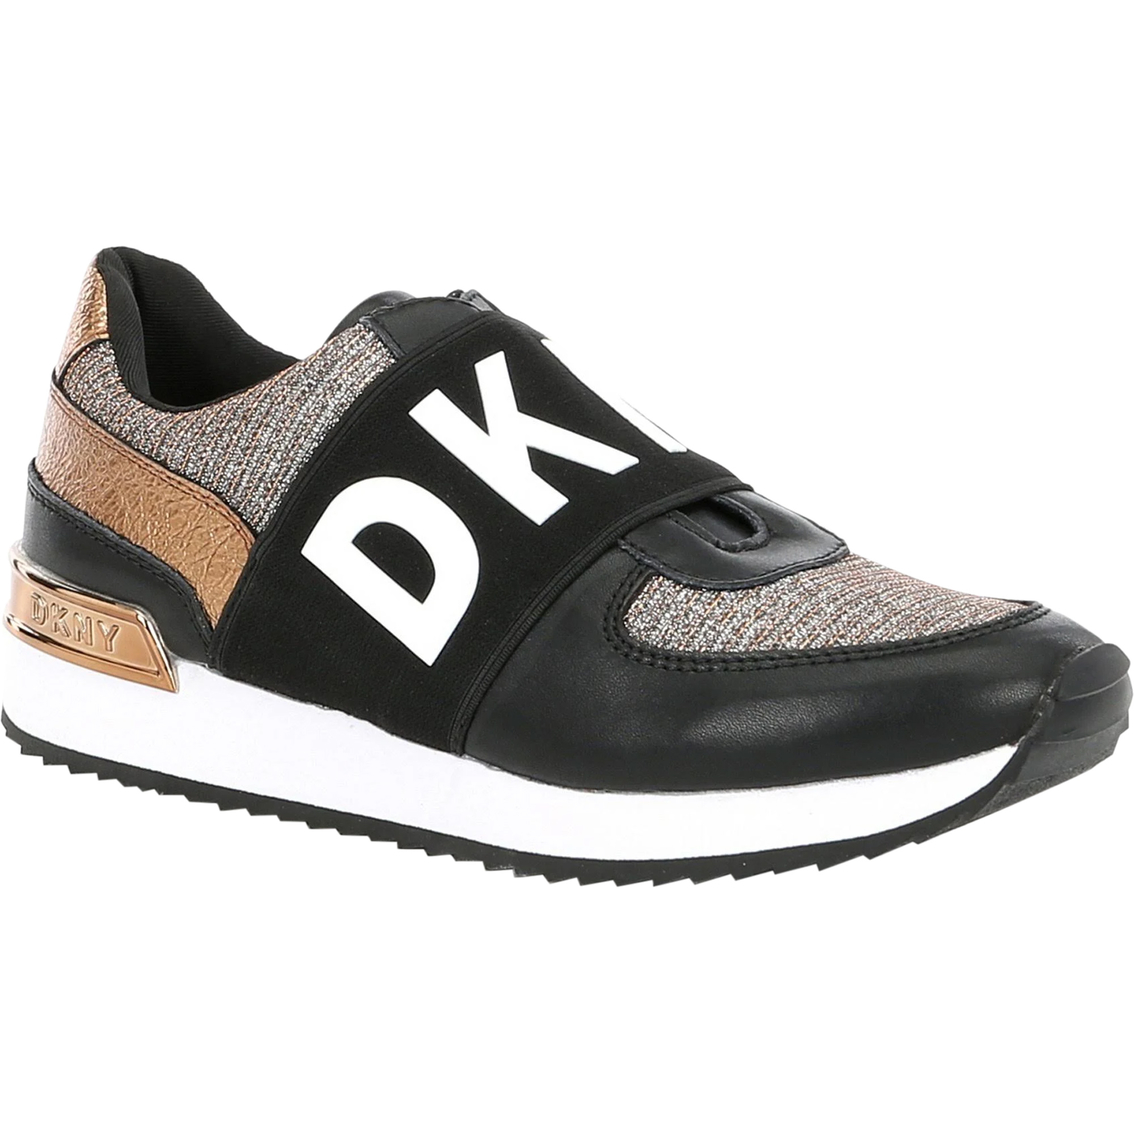 dkny sneakers for women clearance 16eac